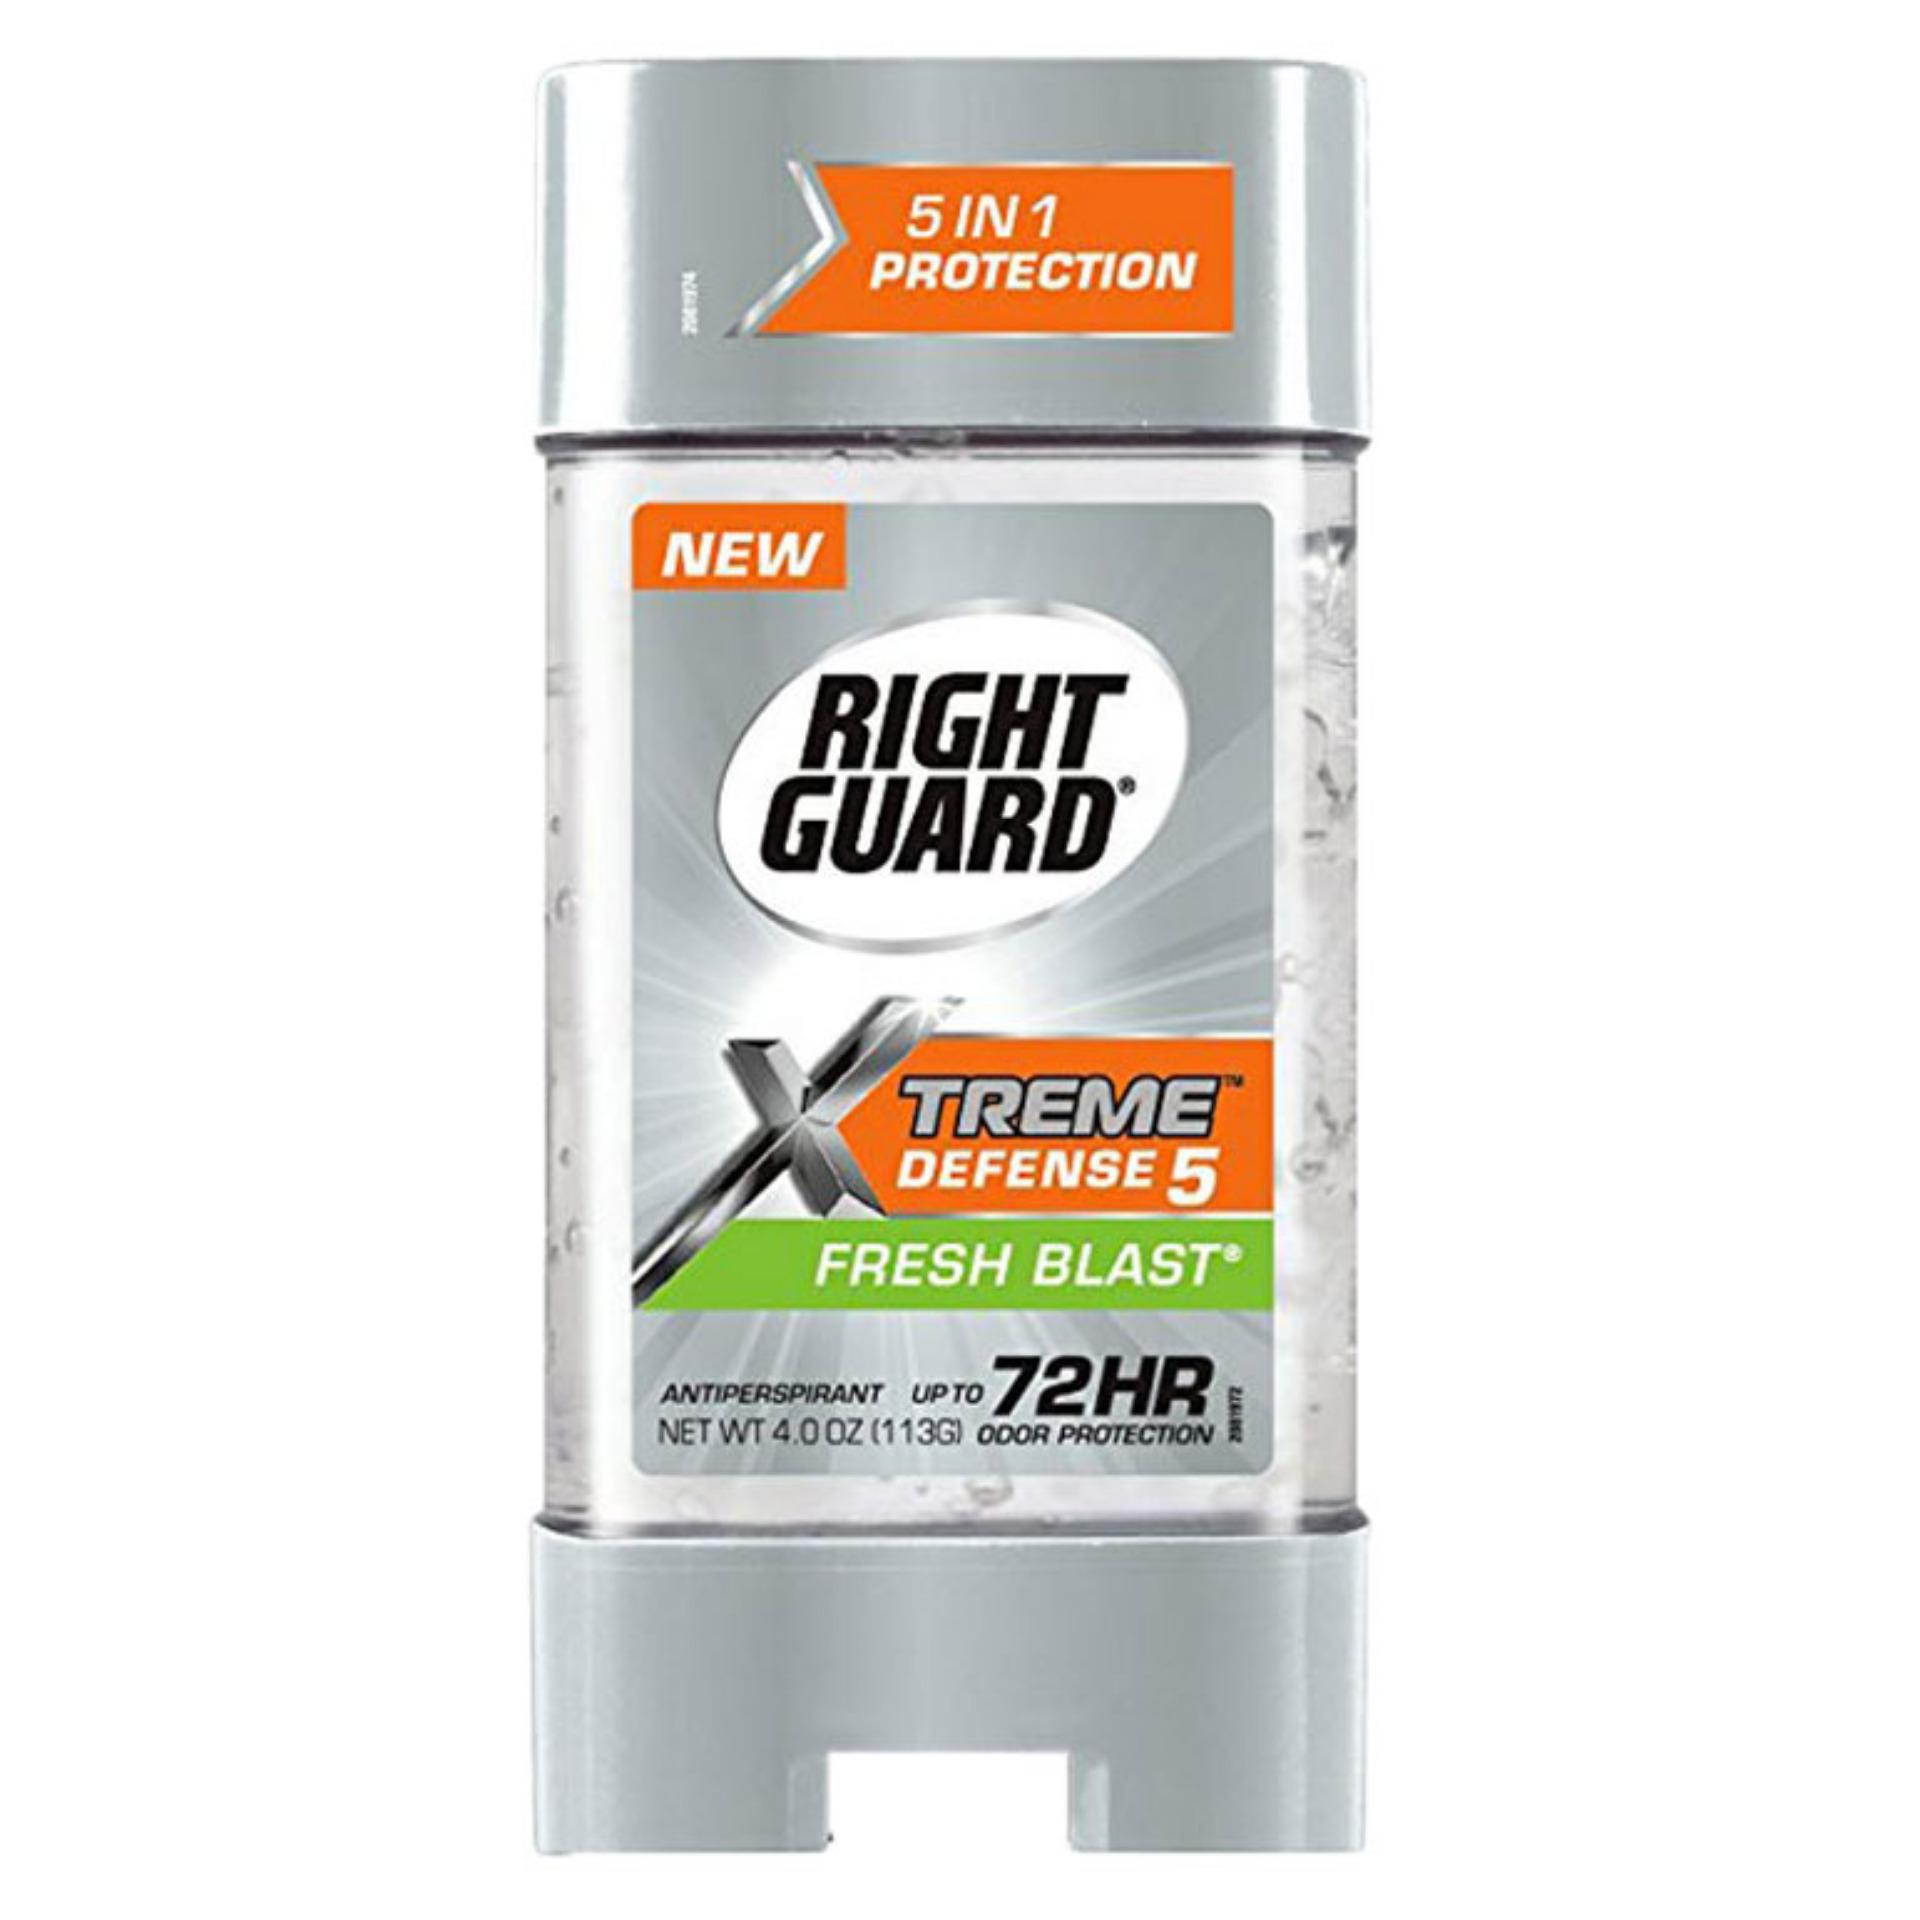 Lăn Khử Mùi Nam Right Guard Xtreme Defense 5 Fresh Blast 113G